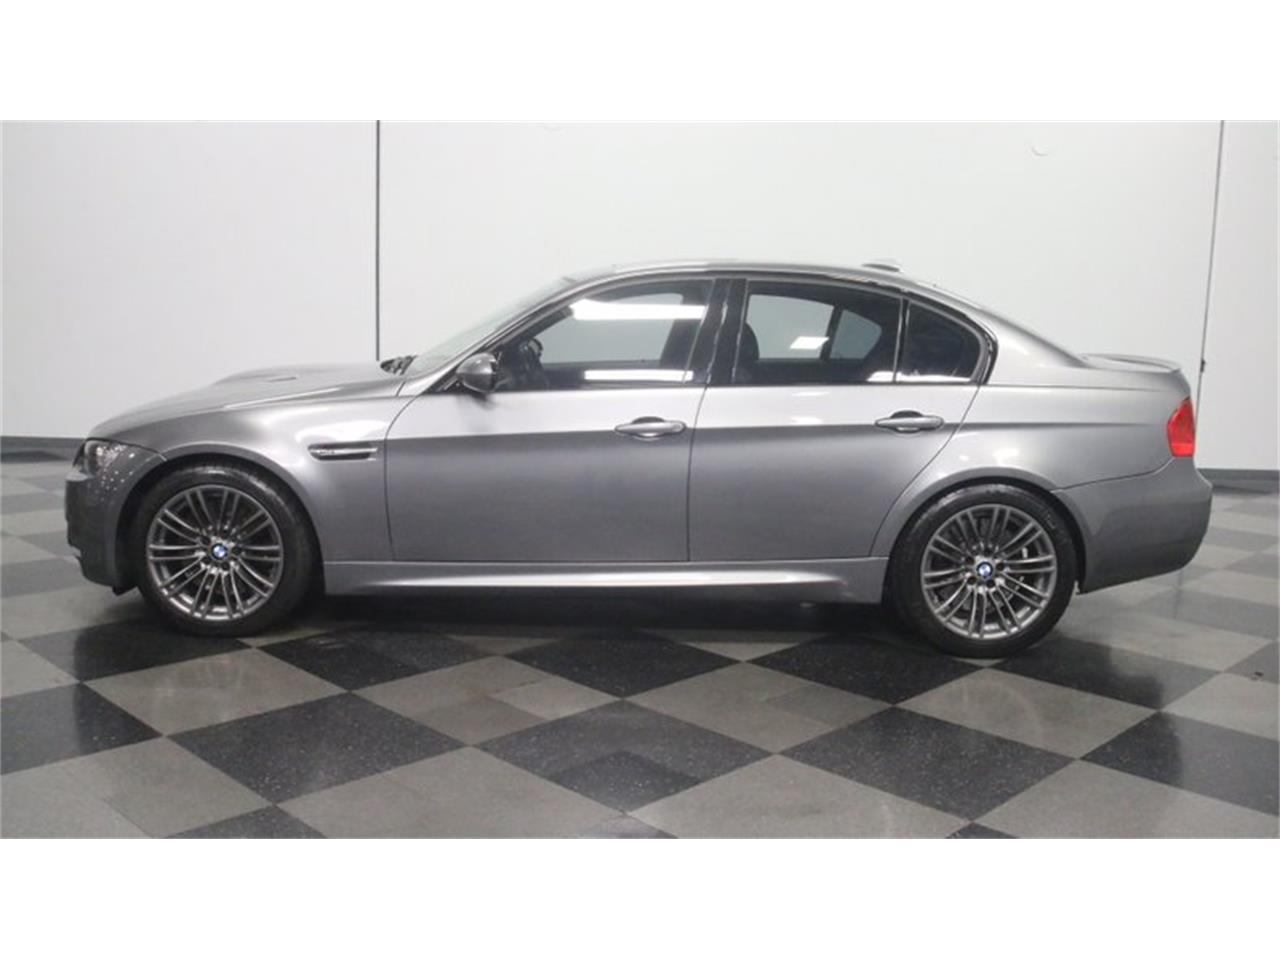 2010 BMW M3 for sale in Lithia Springs, GA – photo 2